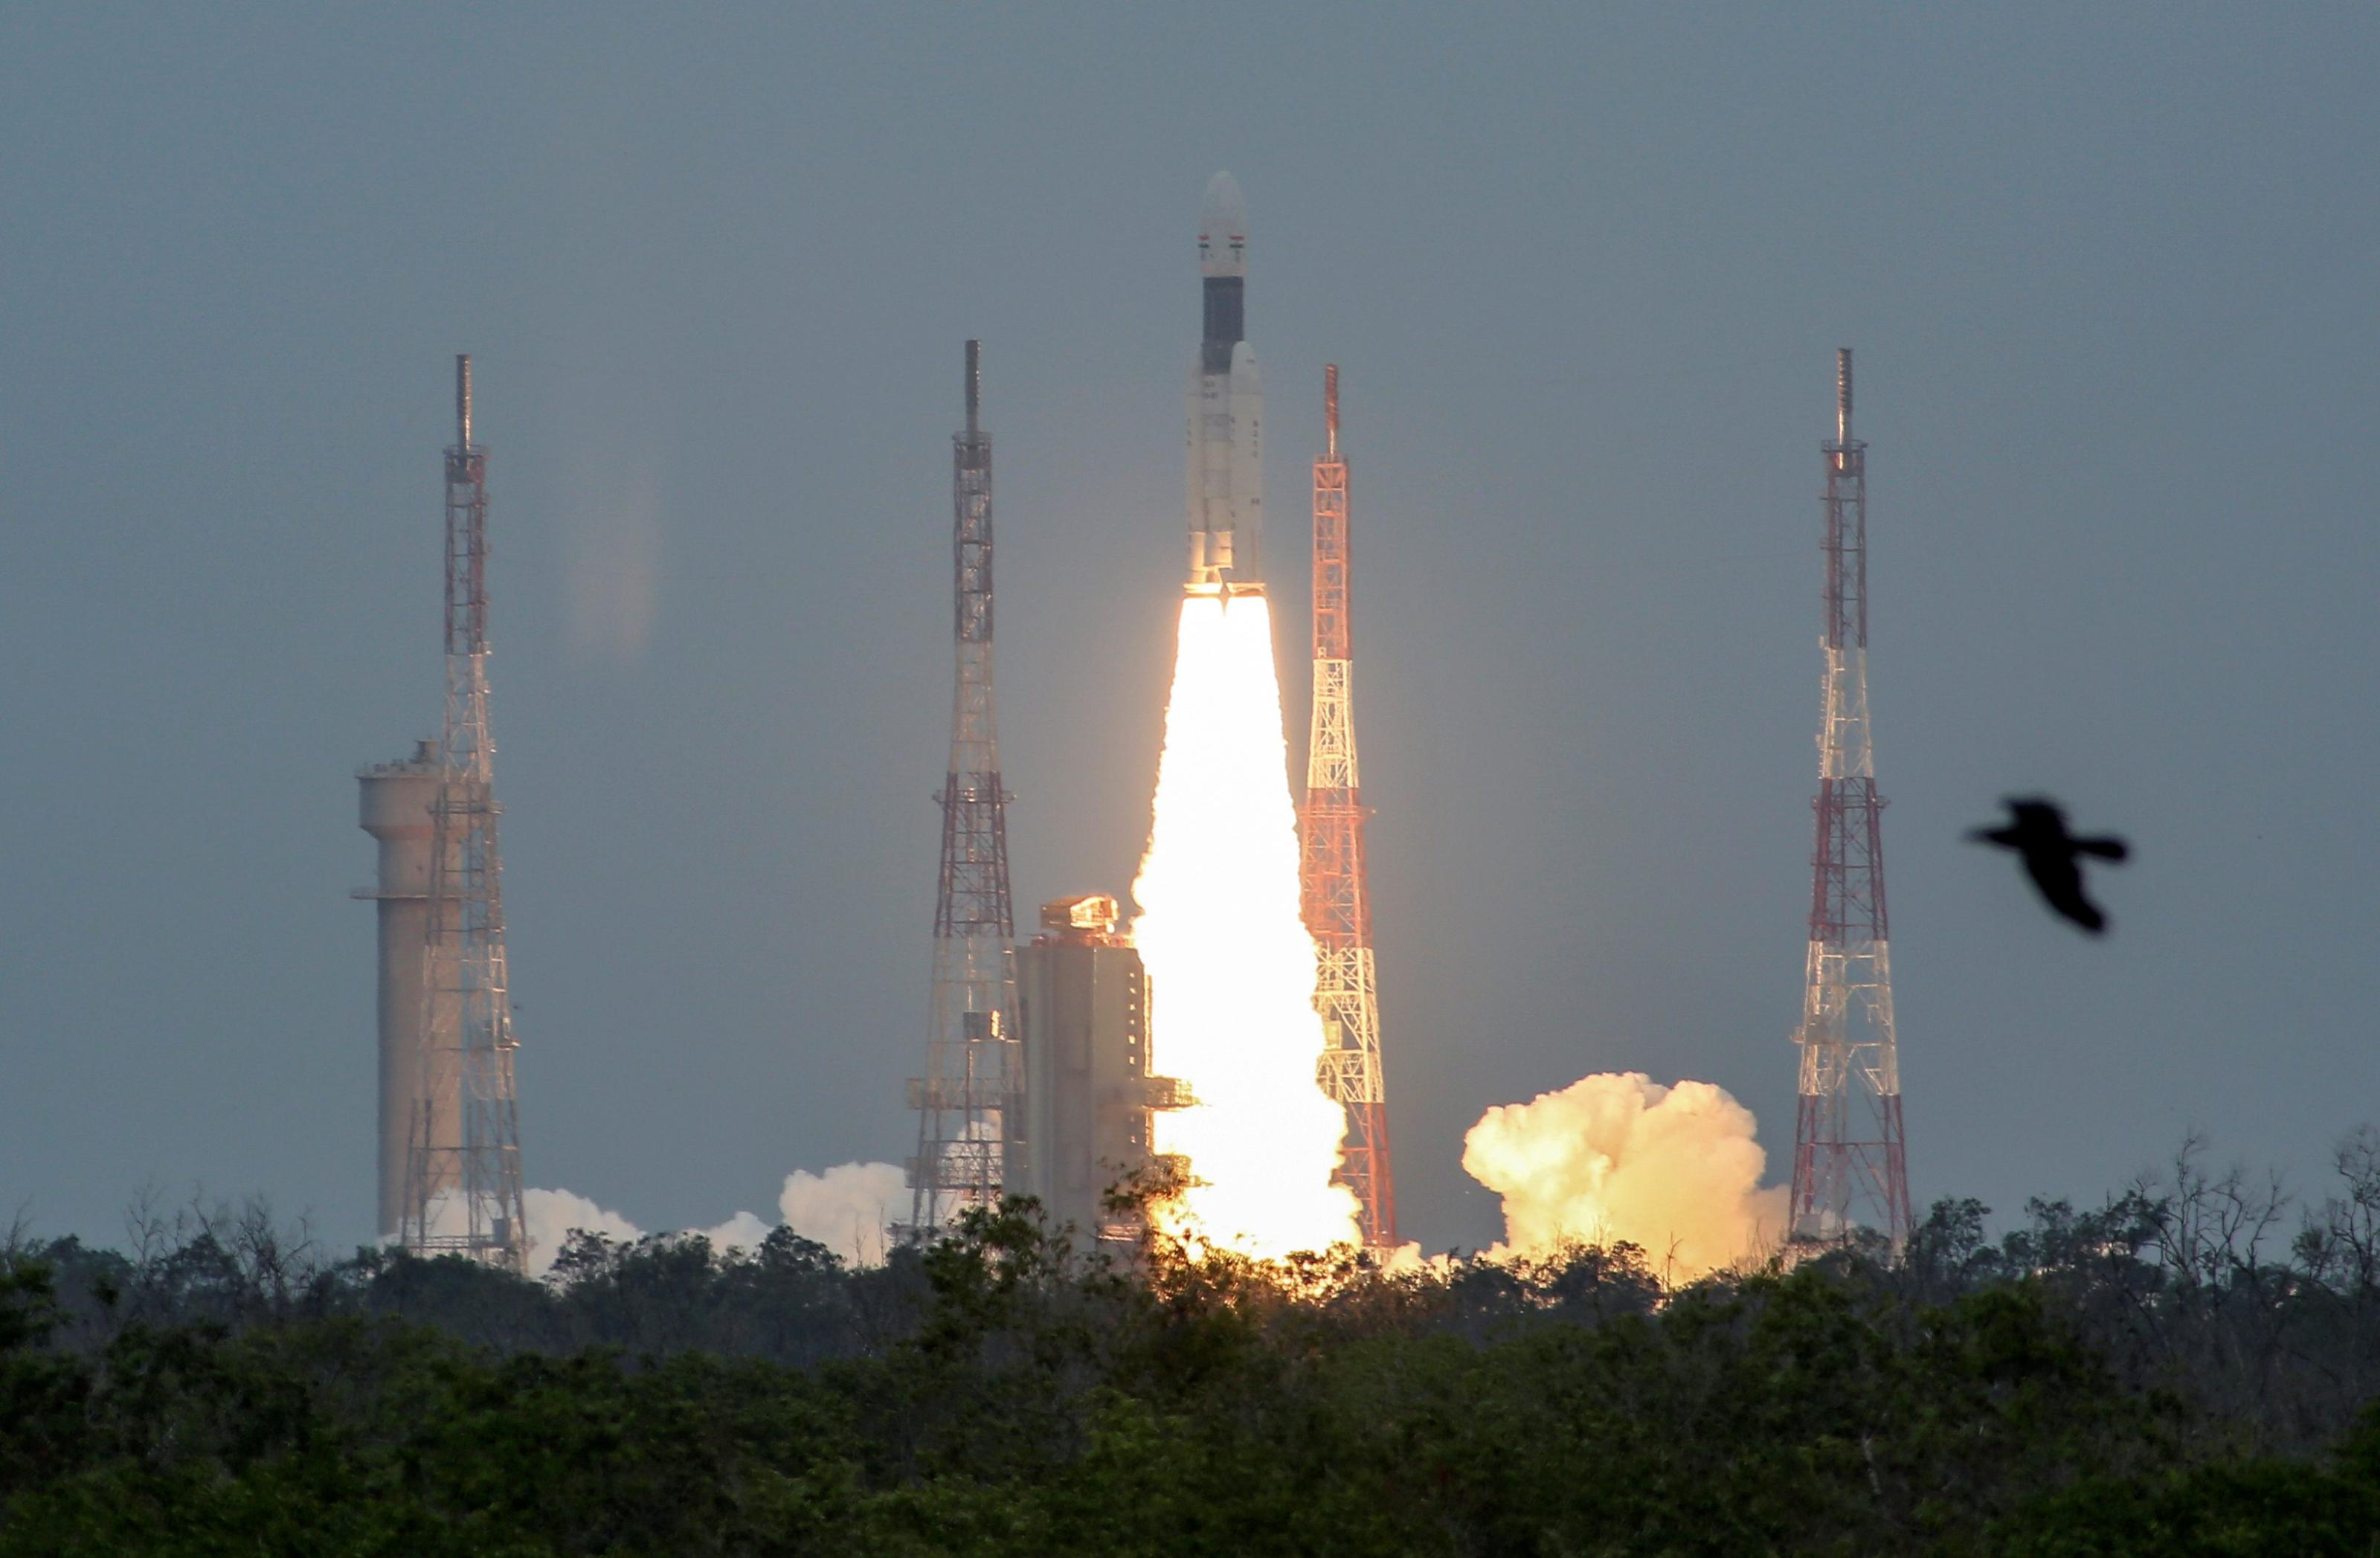 Isro's Chandrayaan-2 moon mission promises big business for India